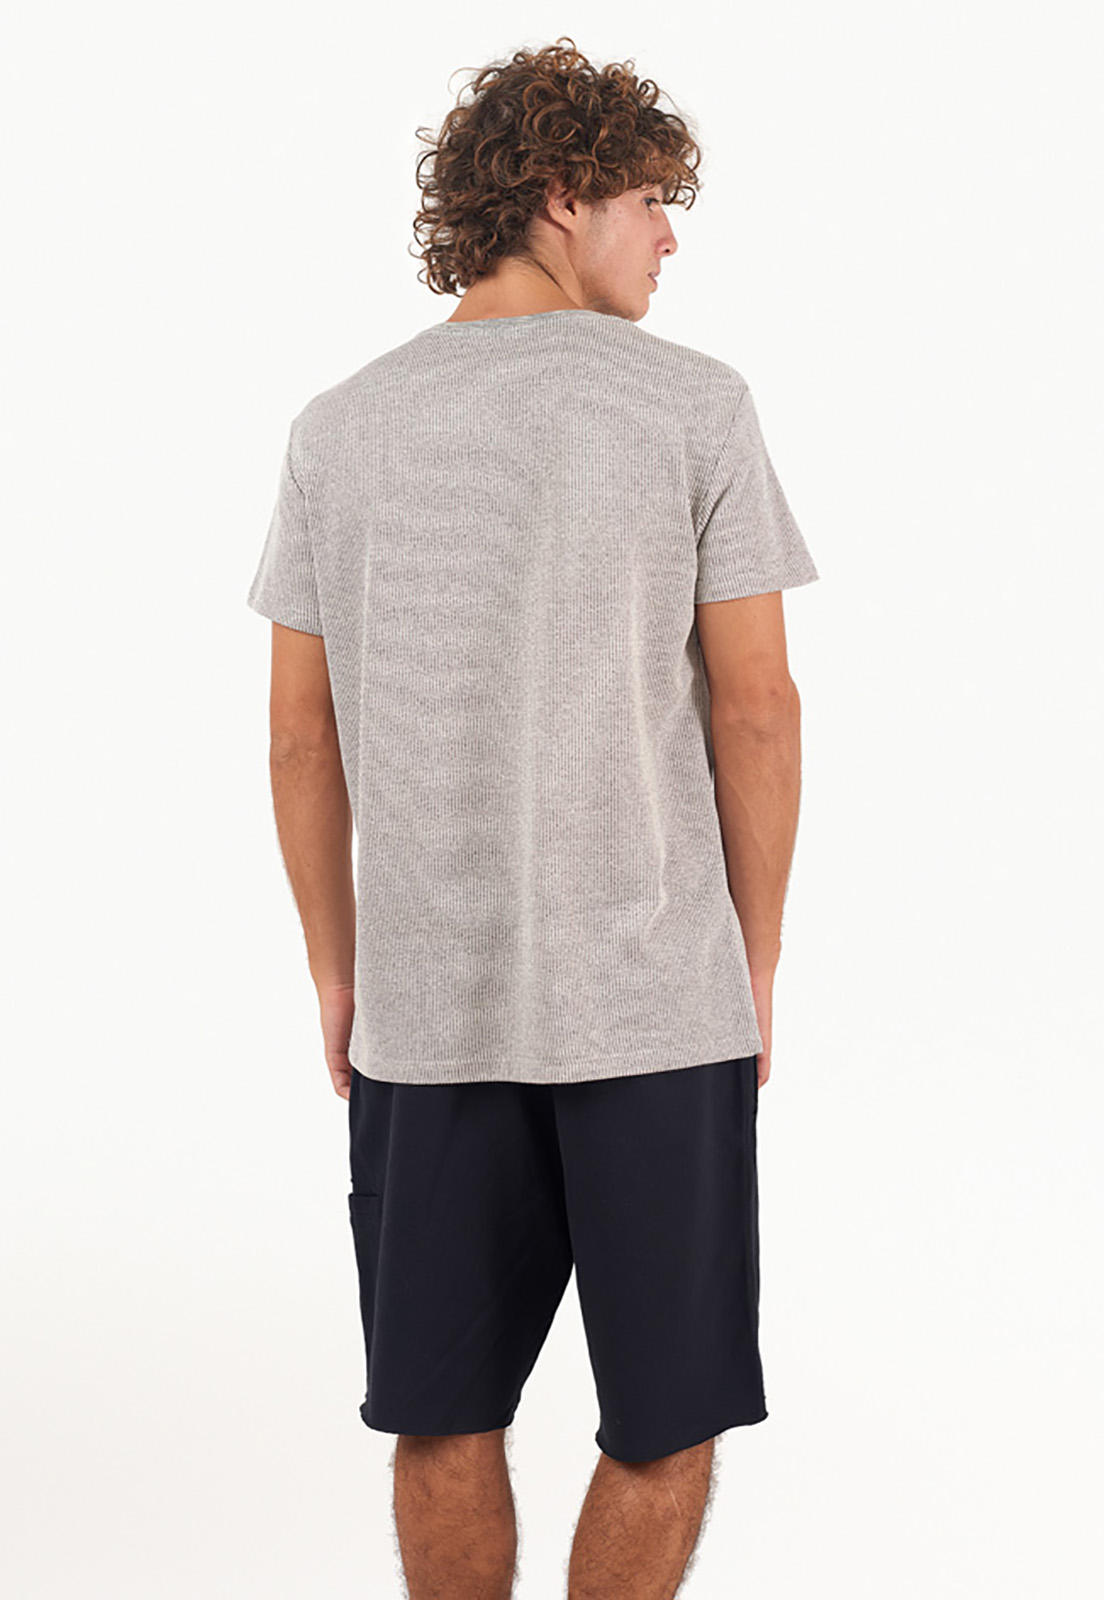 T-Shirt Classic Sessions melty  - melty surf & Co.